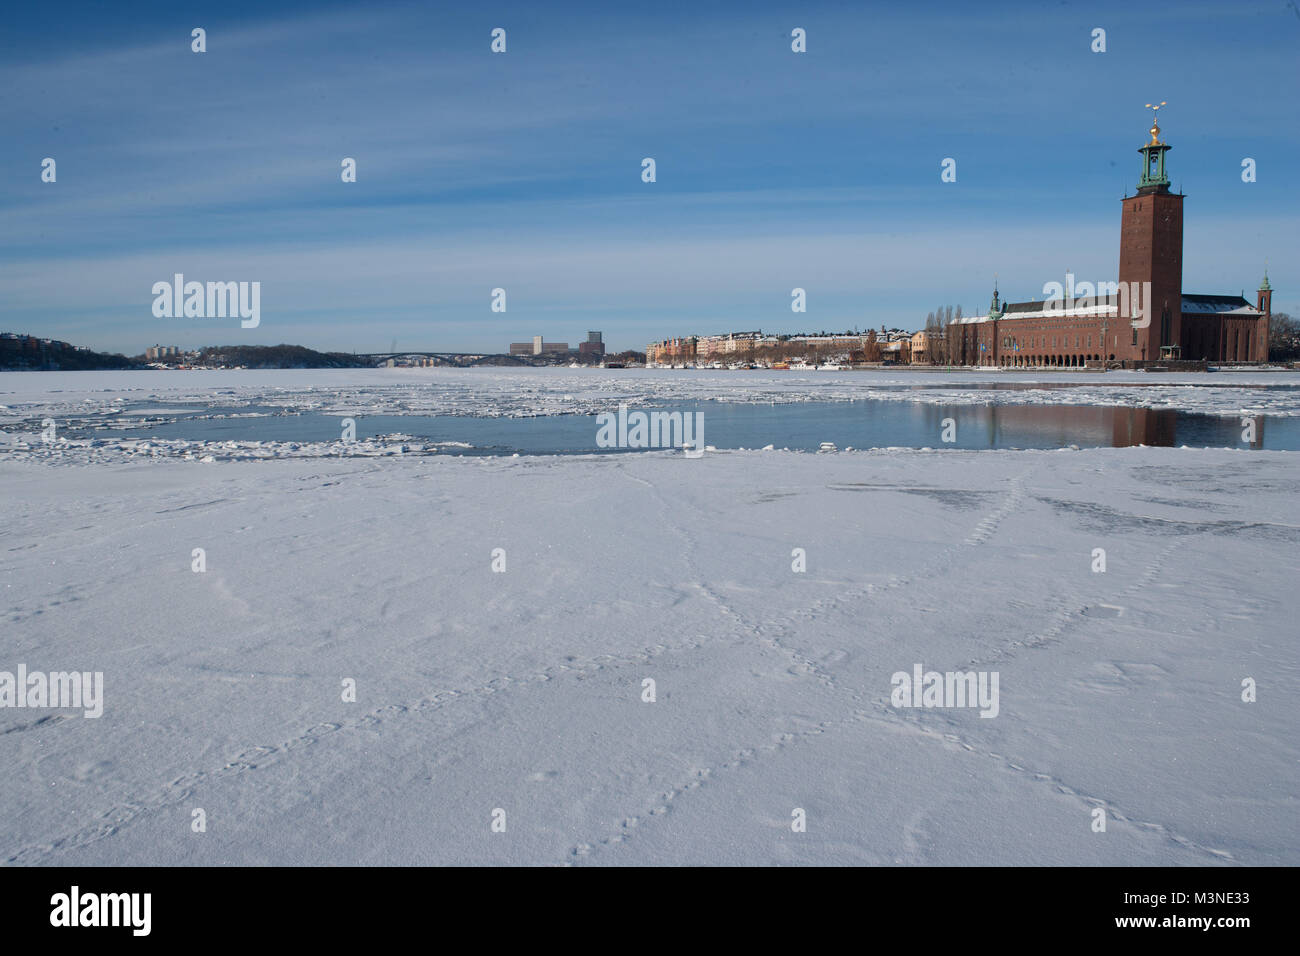 View of Stadshuset in Stockholm across a frozen Mälaren - Stock Image